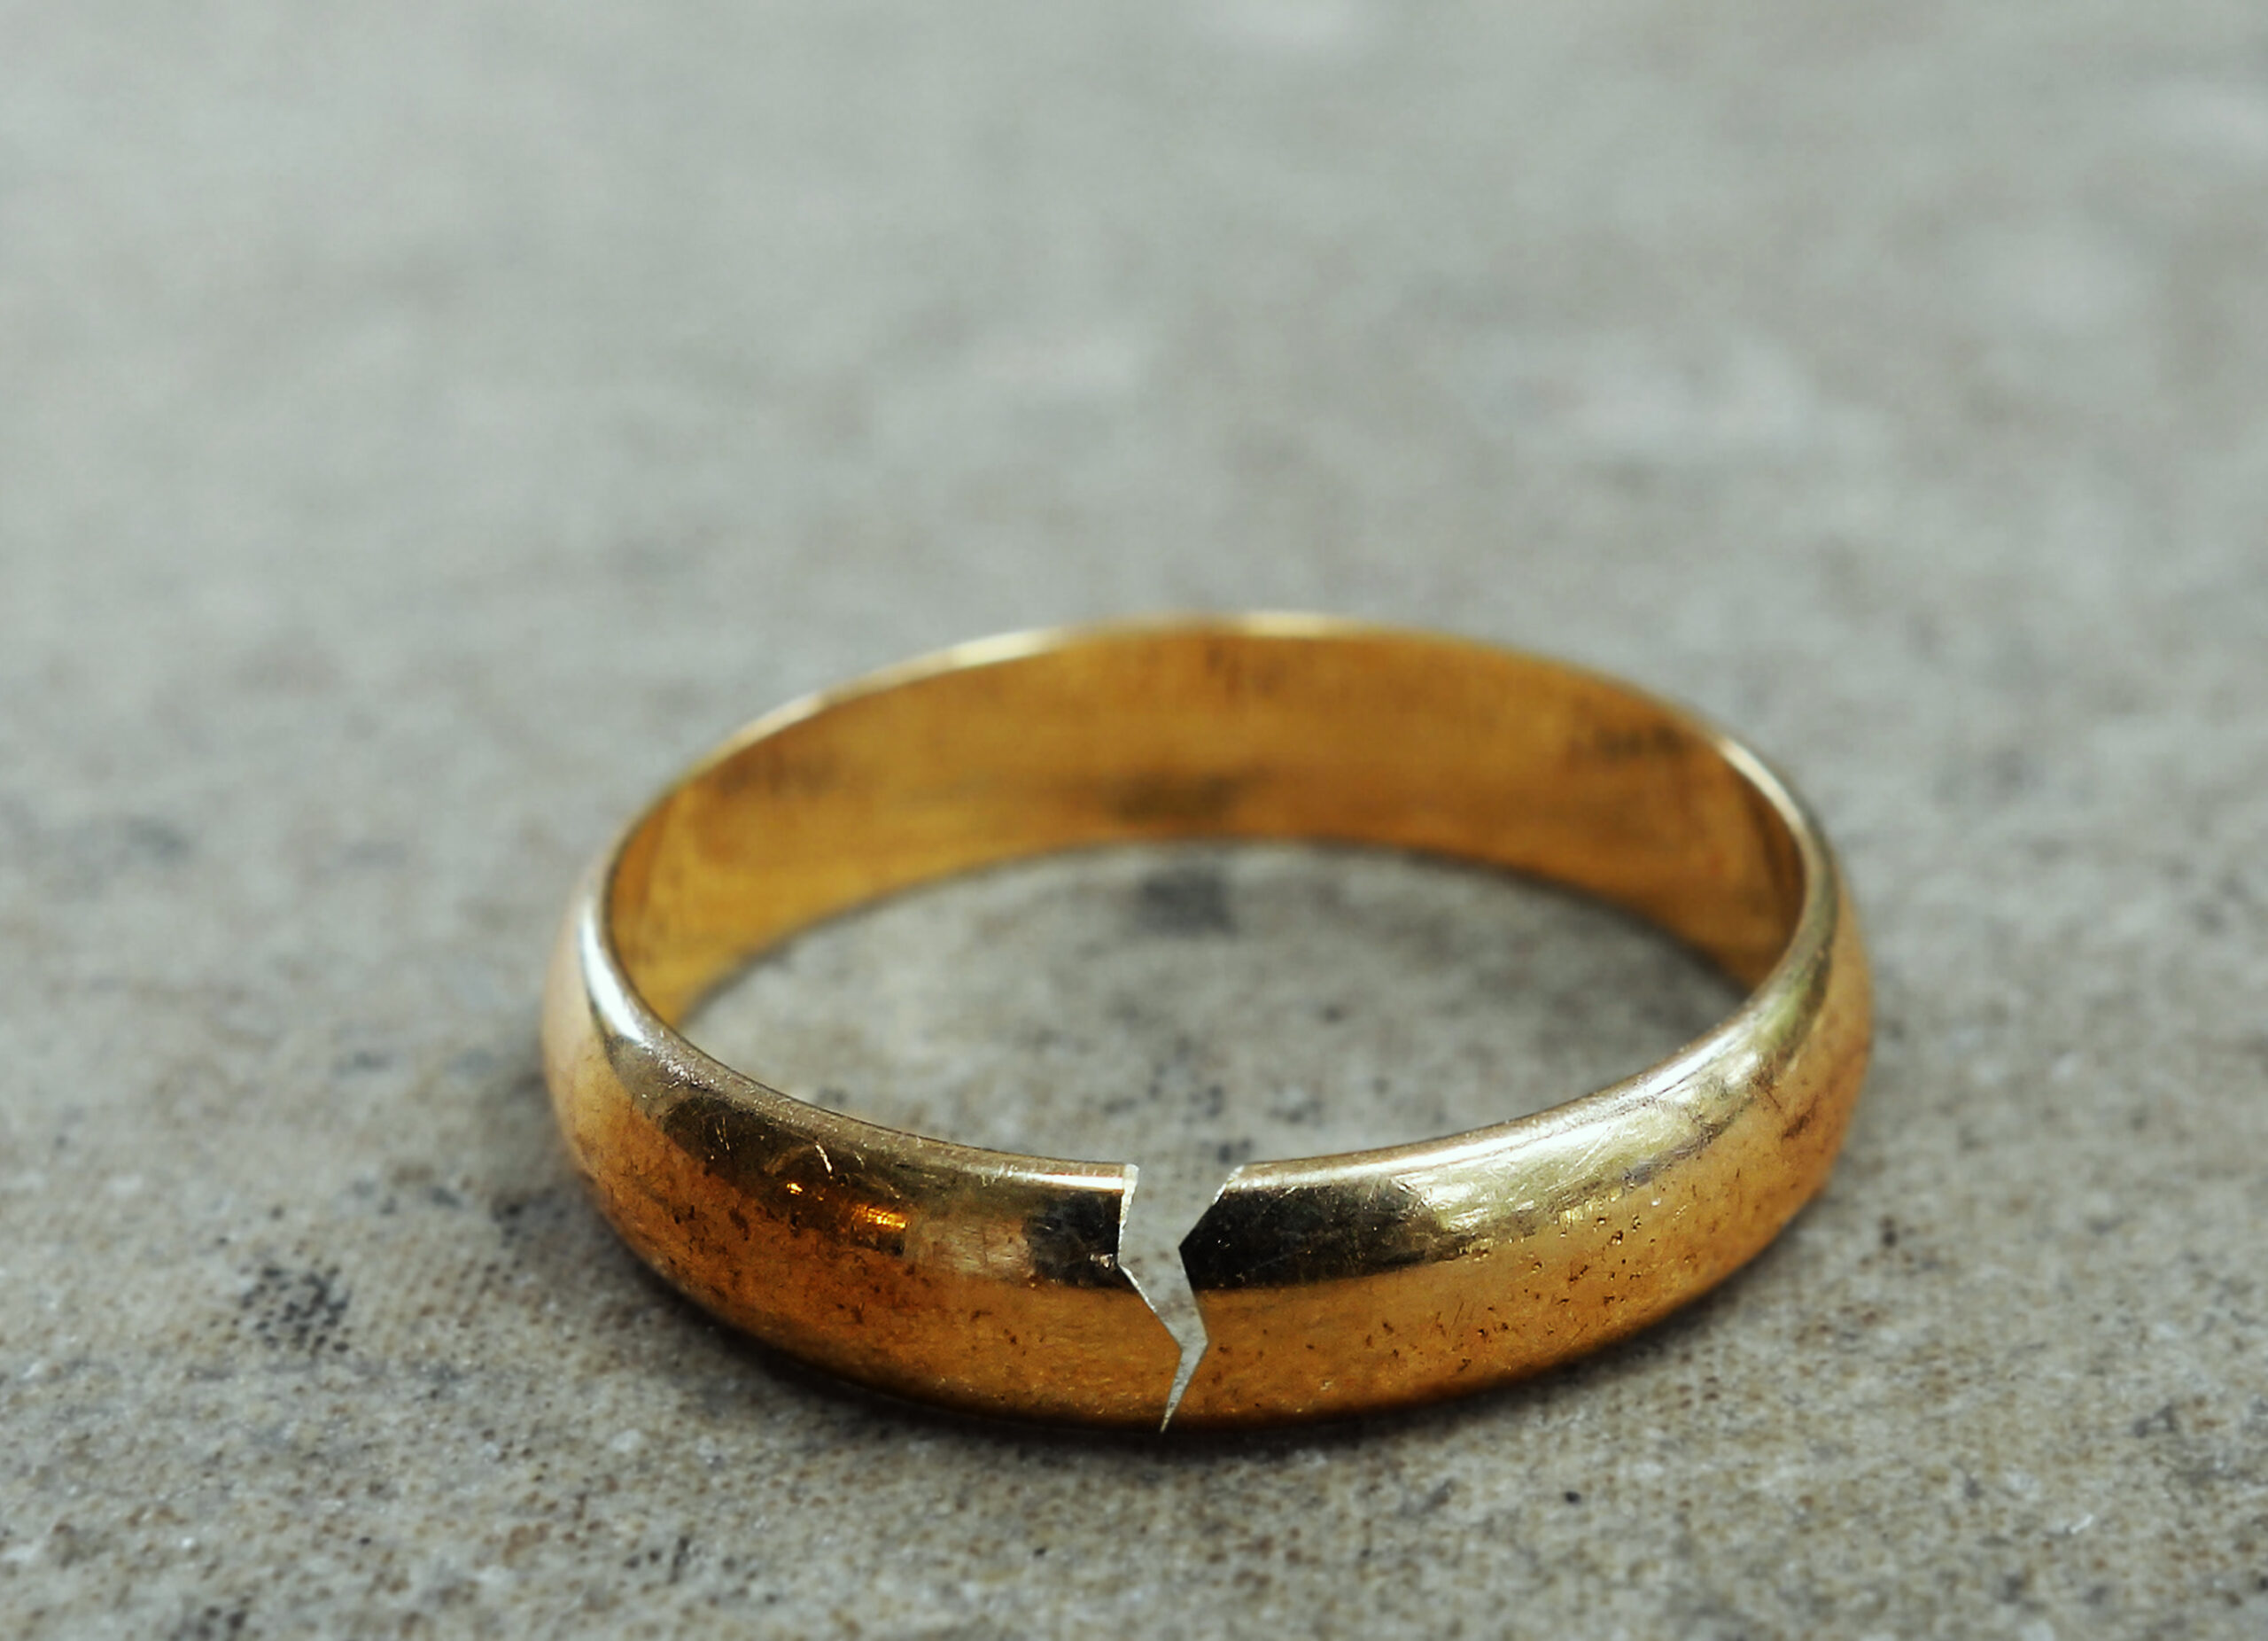 Cracked,Gold,Wedding,Ring,--,Divorce,Or,Infidelity,Concept